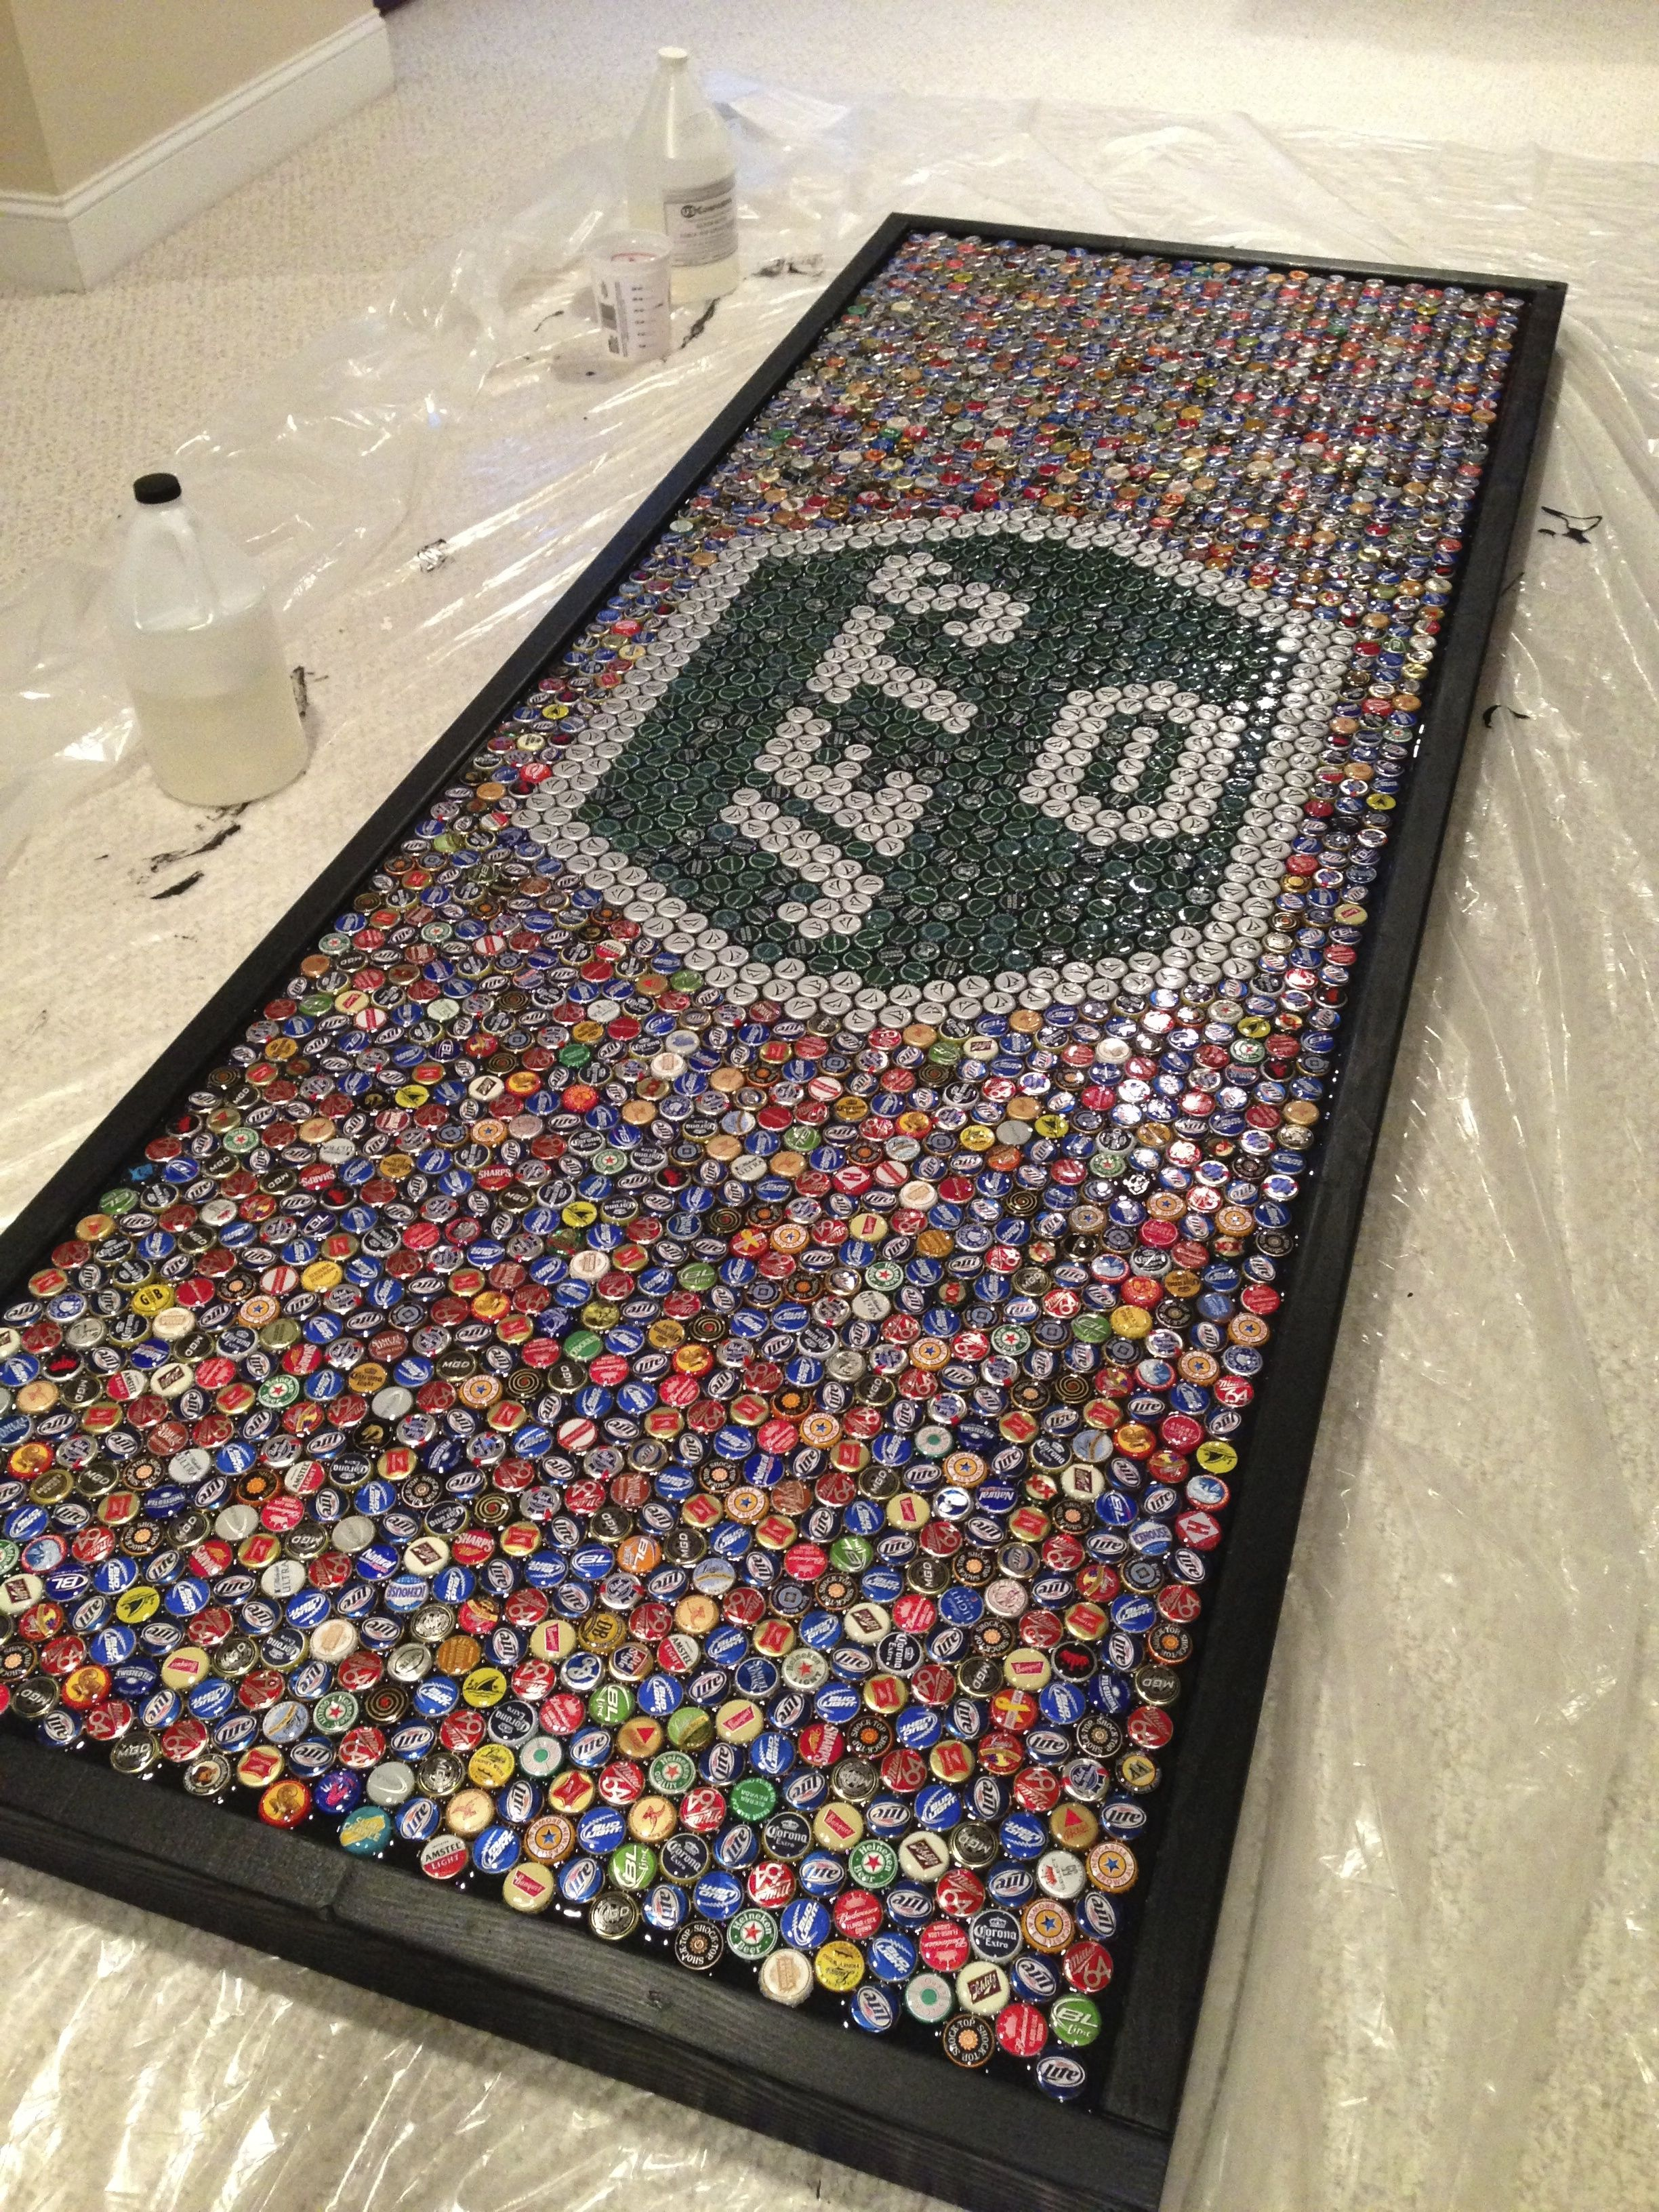 NY Jets beer pong table made with beer bottle caps